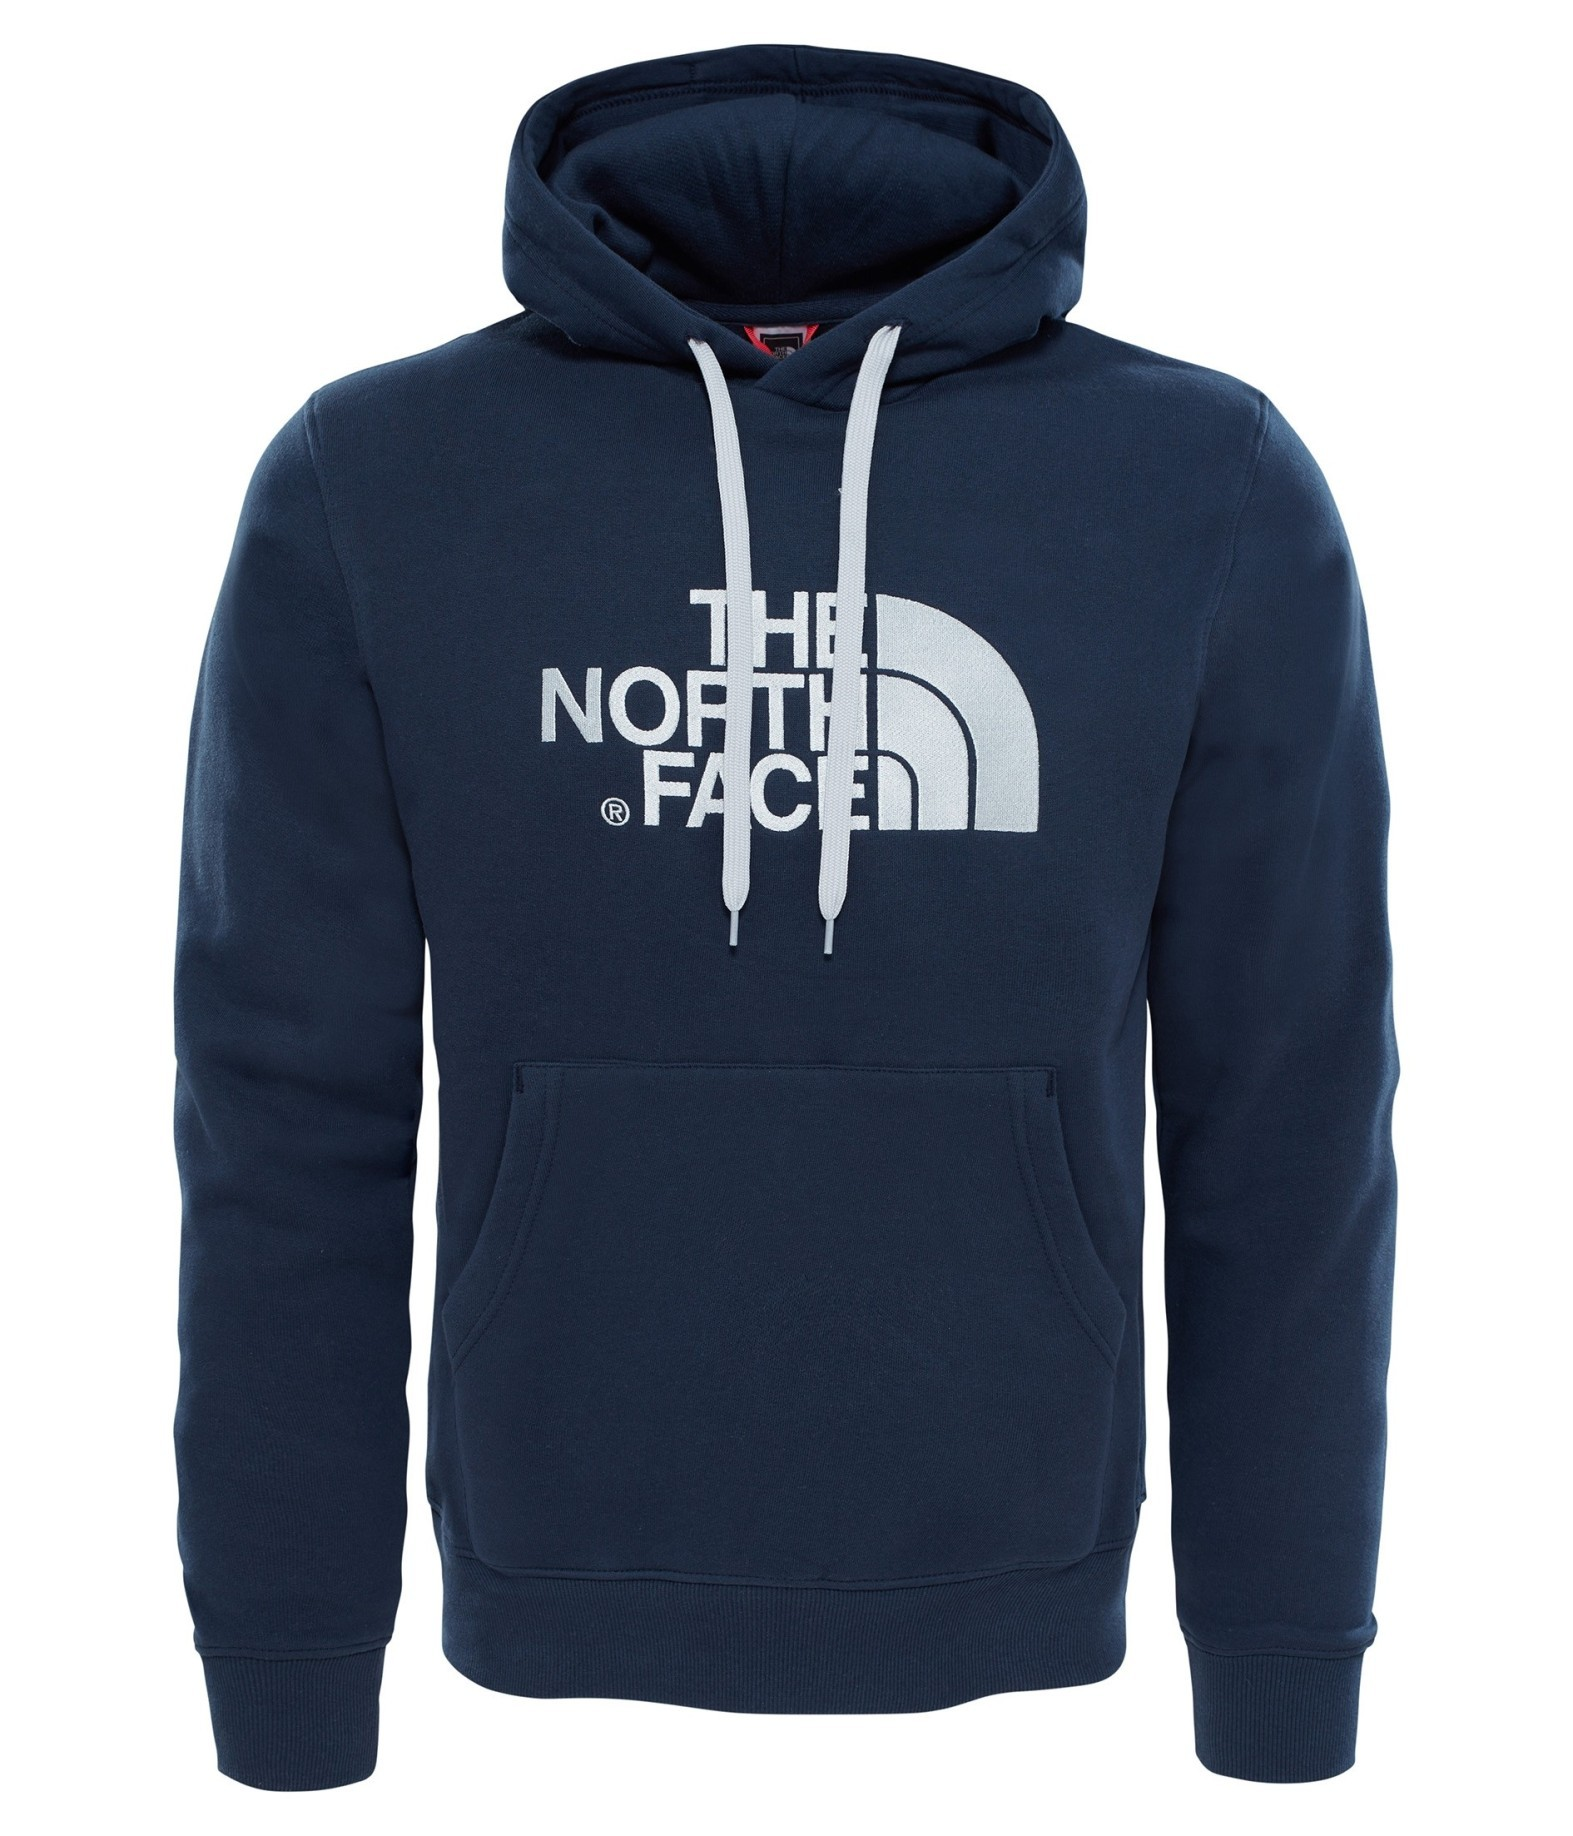 Sweatshirt Trekking Uomo Drew Peak colore Blue - North Face ... 609c6c260afc